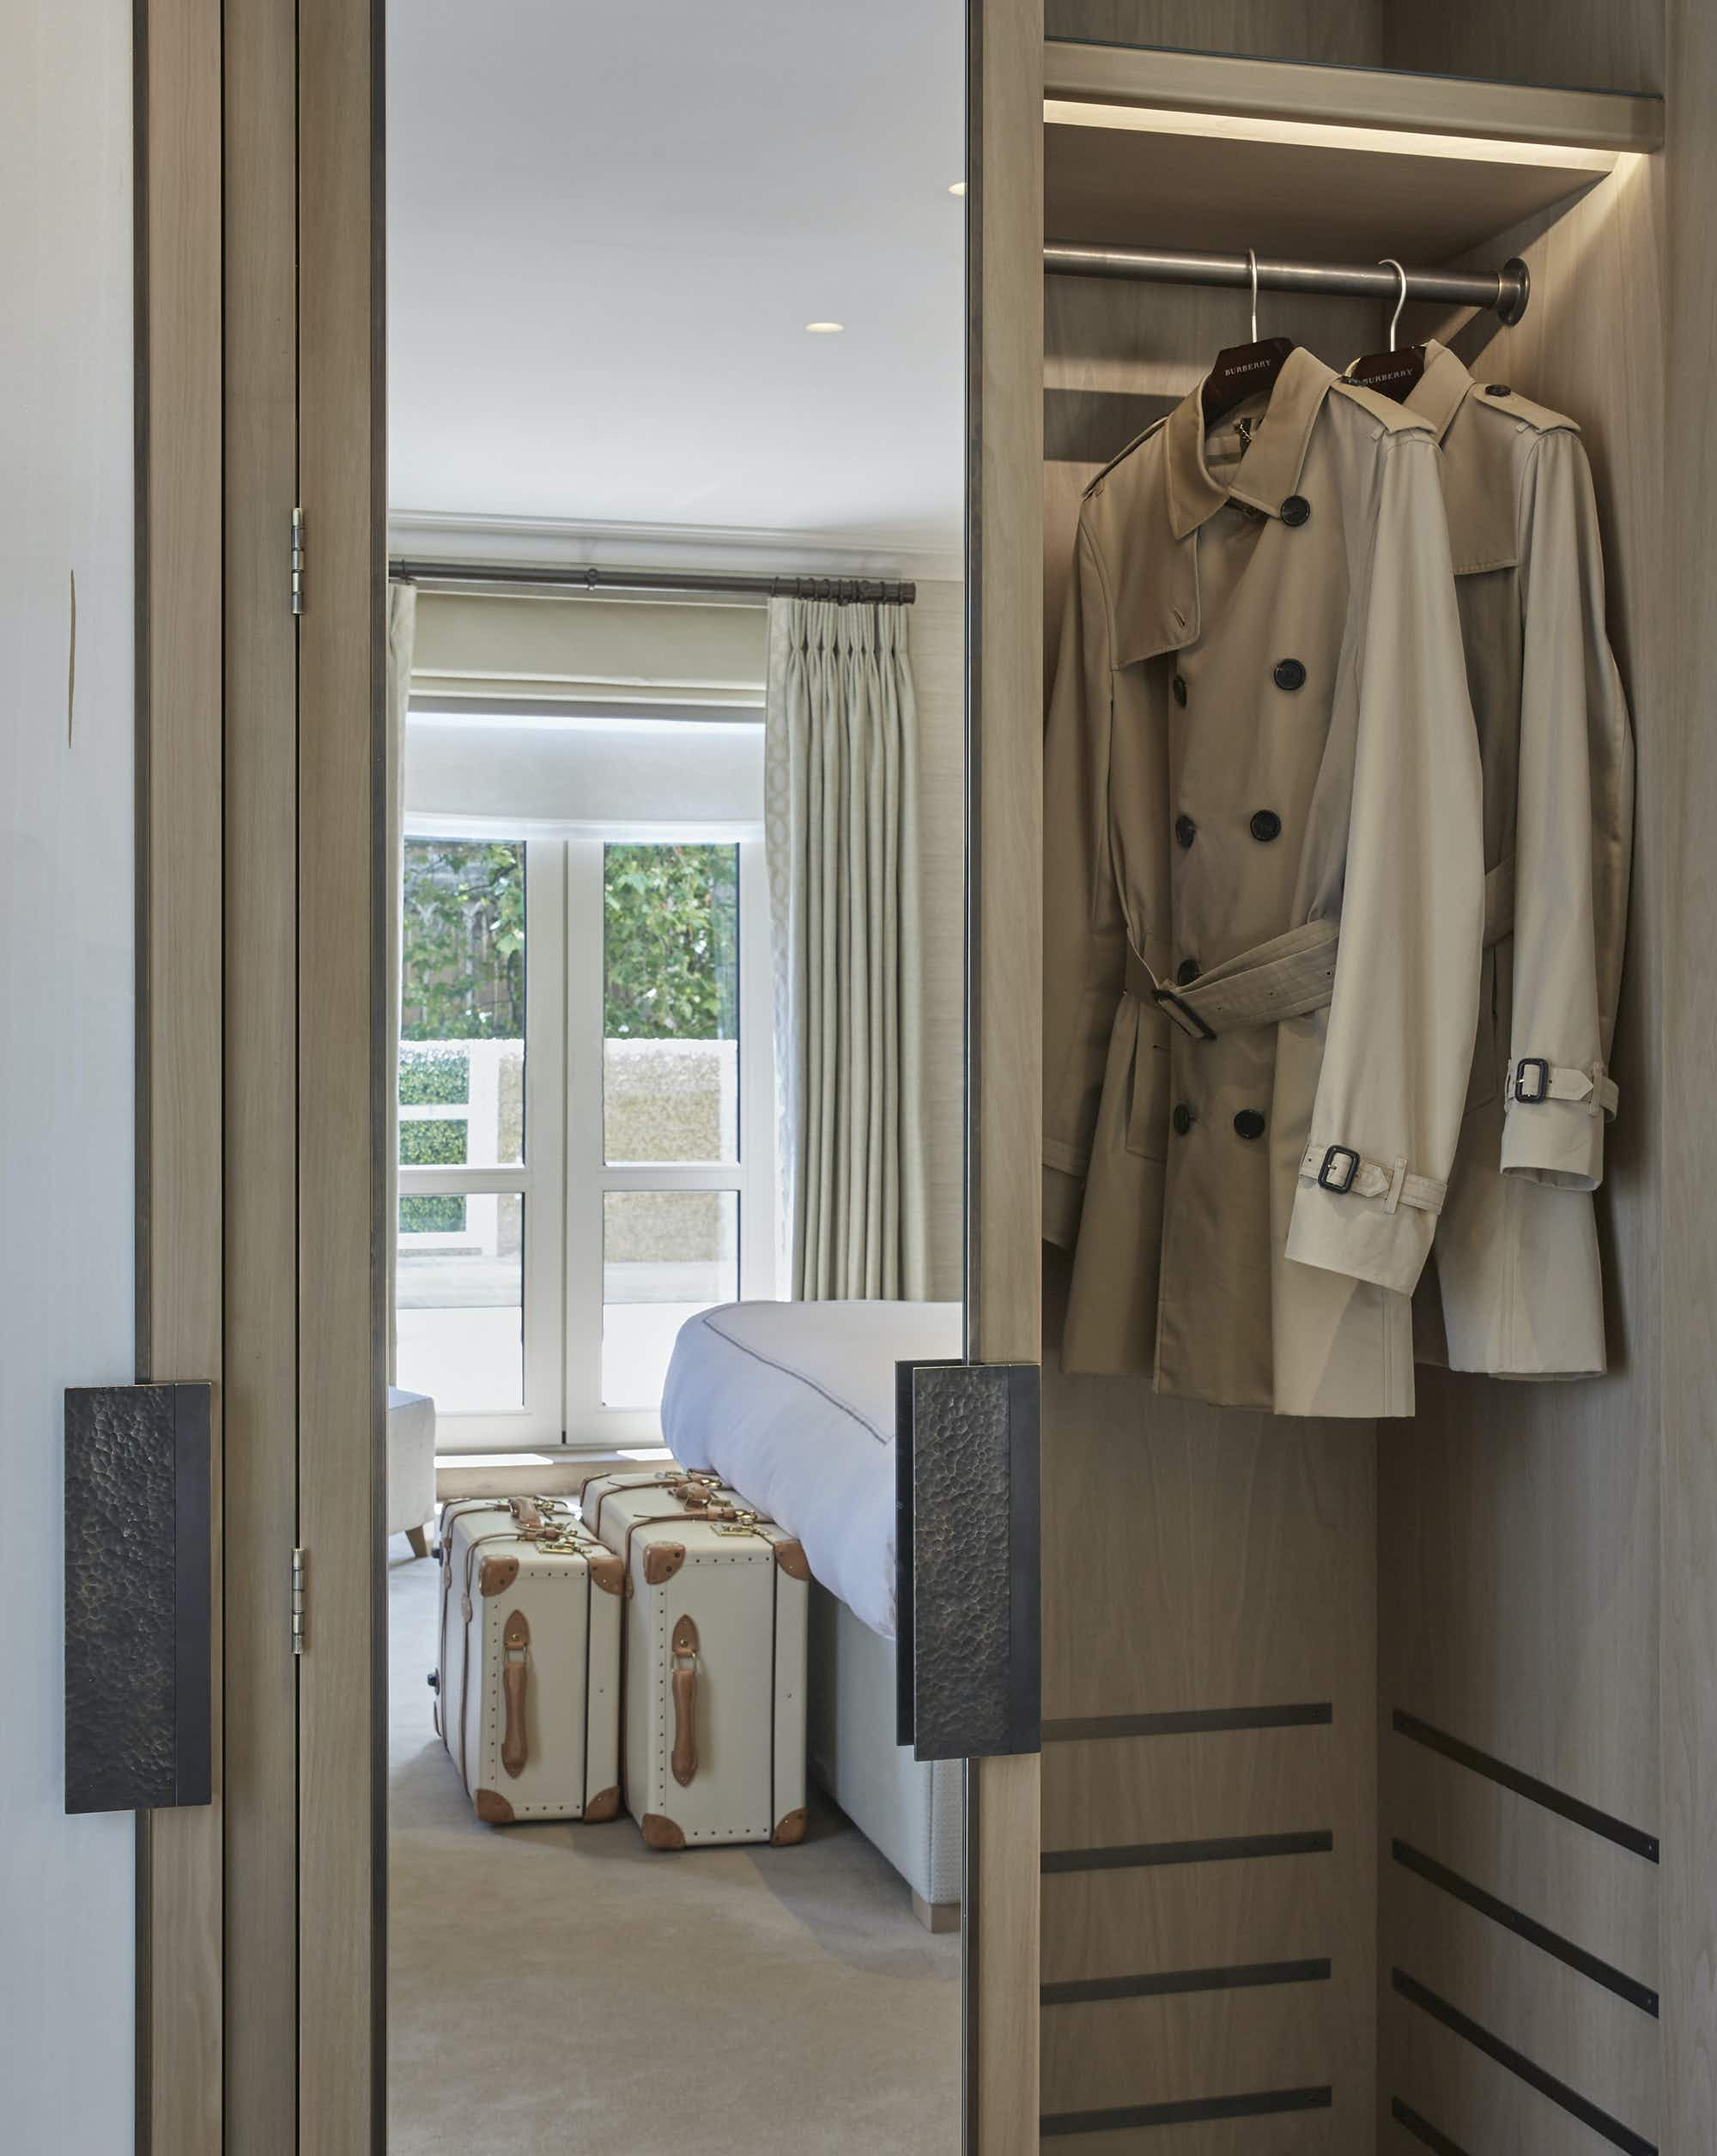 Rooms in this chic London hotel offer a Burberry trench coat for rainy British days